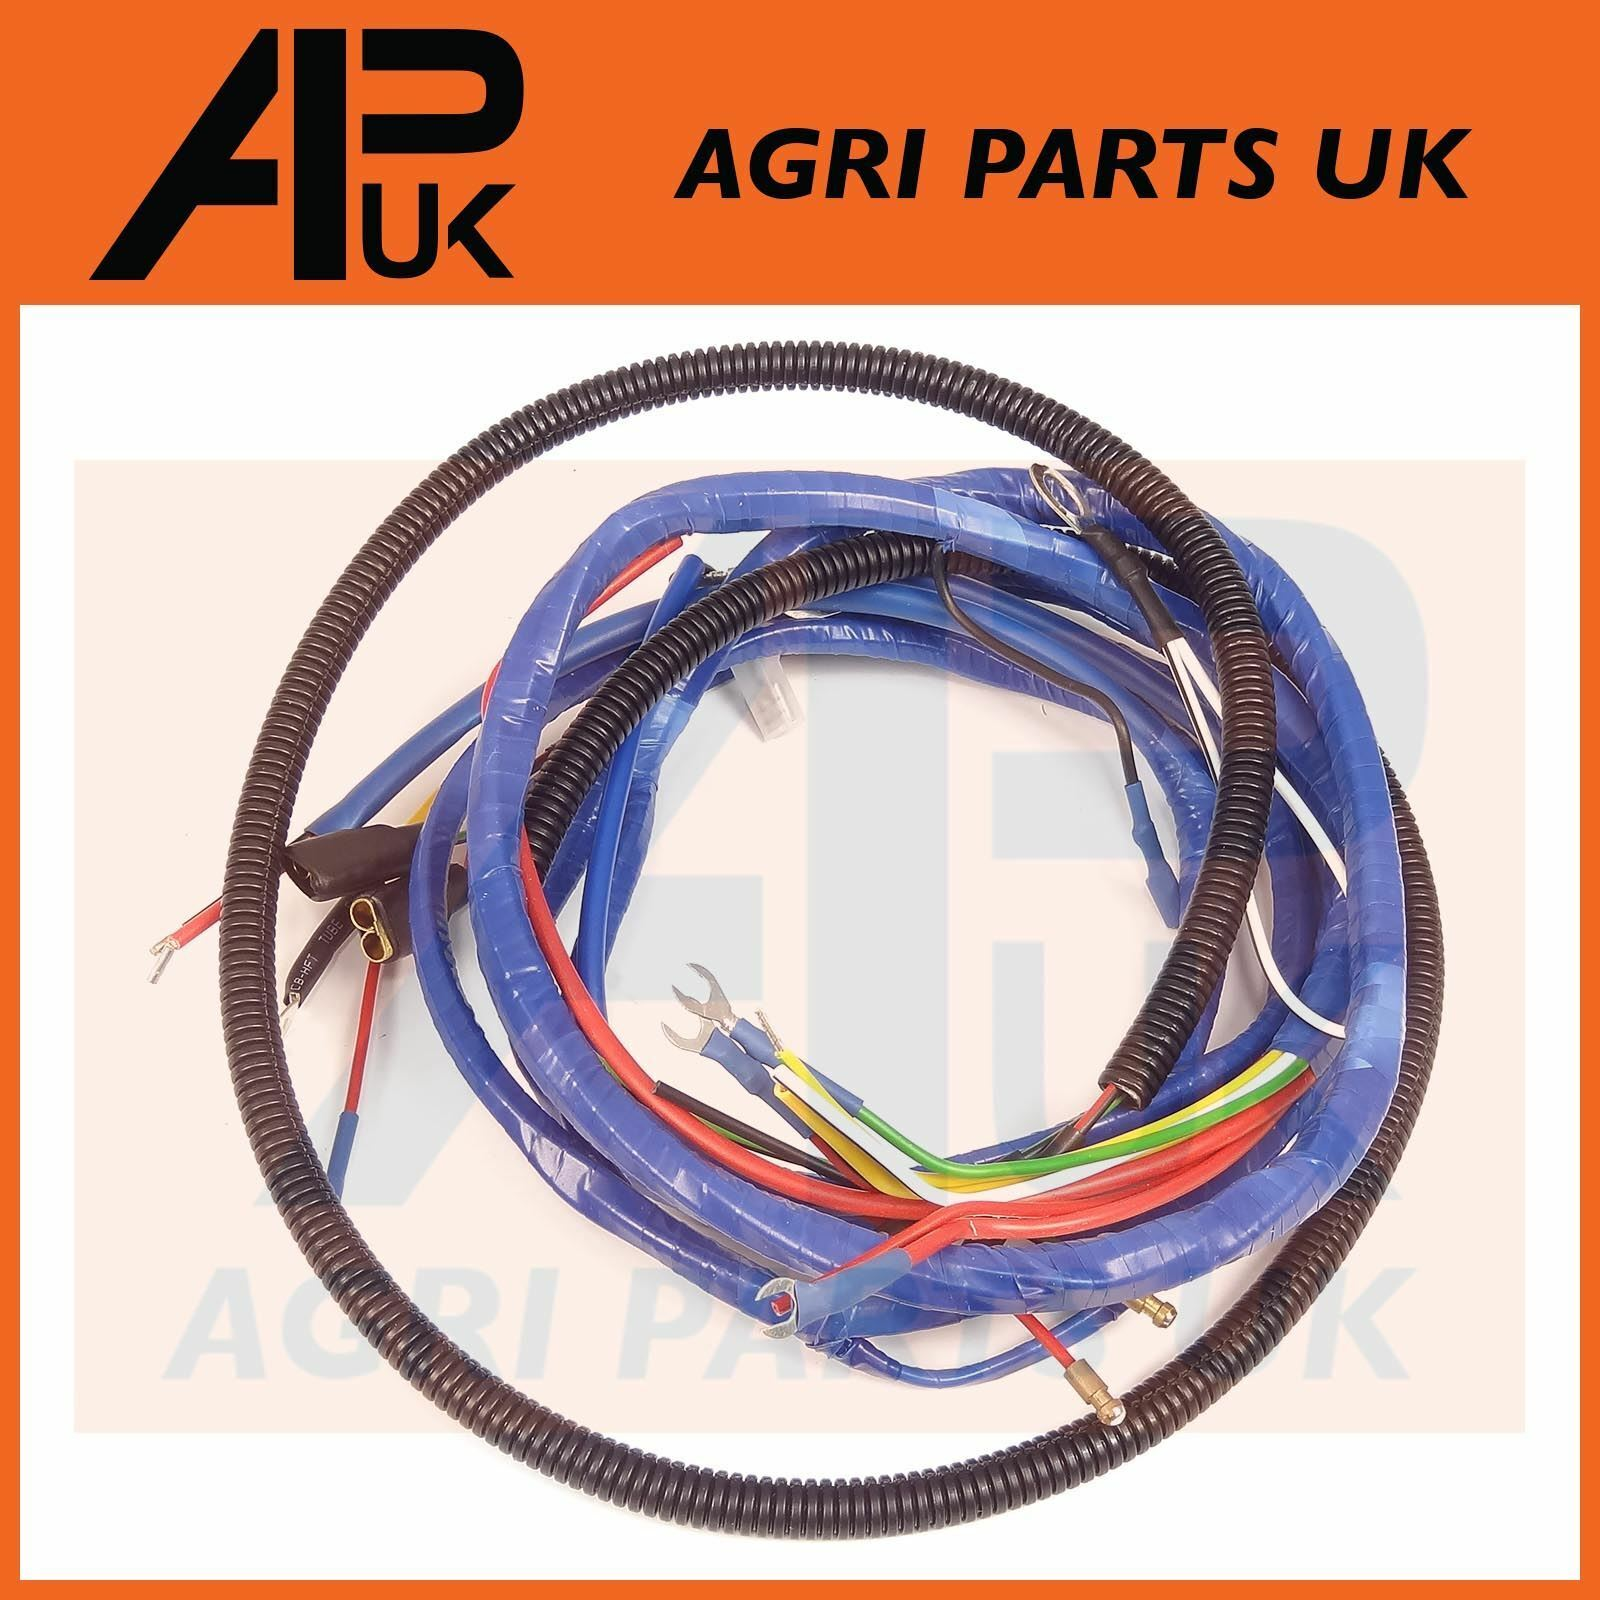 Fordson Major Tractor Wiring Harness Loom 4 Cyl Diesel See Ford 6000 Diagram 1 Of 1free Shipping More